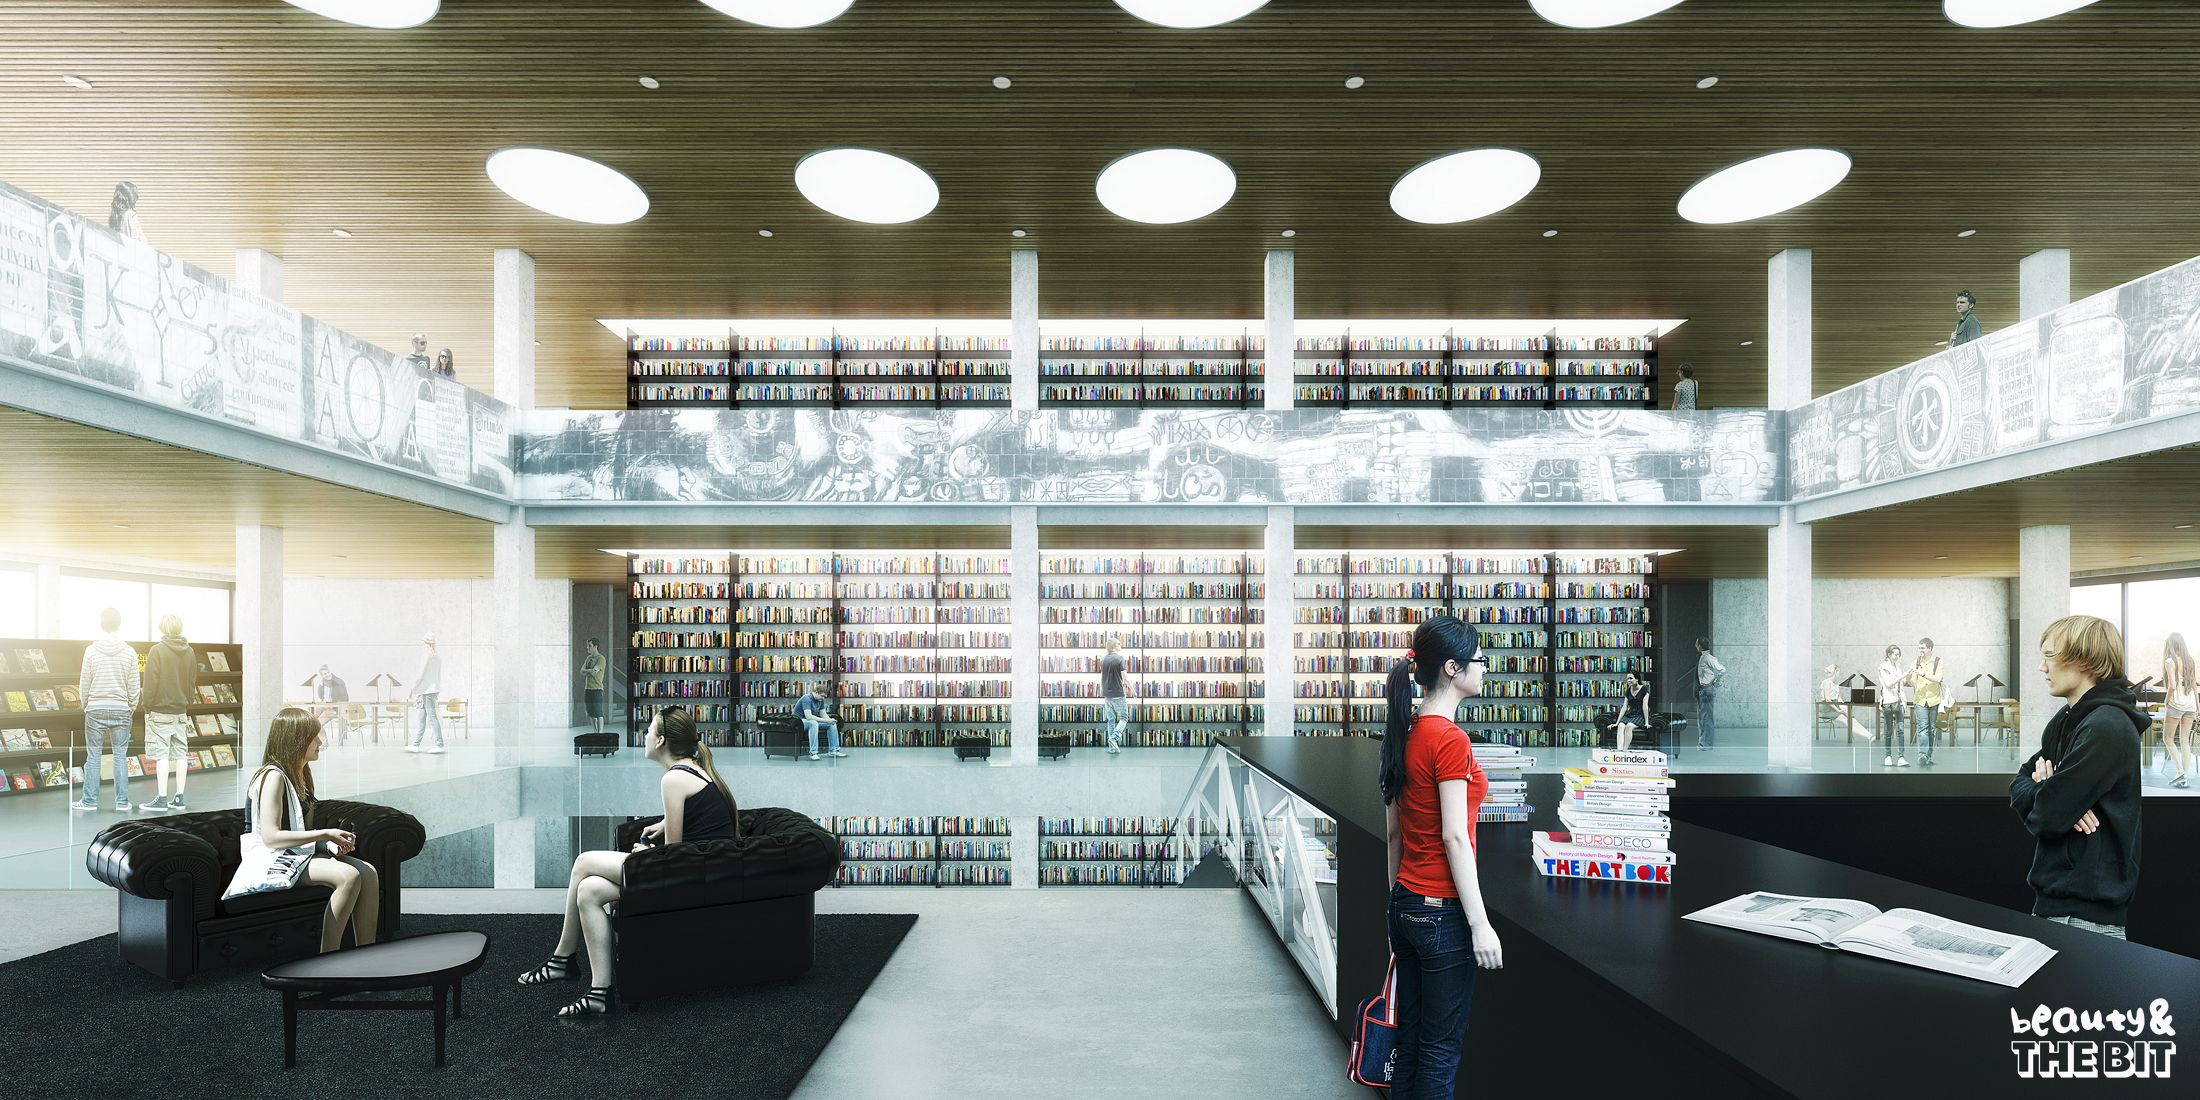 Erasmus University Library Competition Netherlands KAAN Architecten 2013